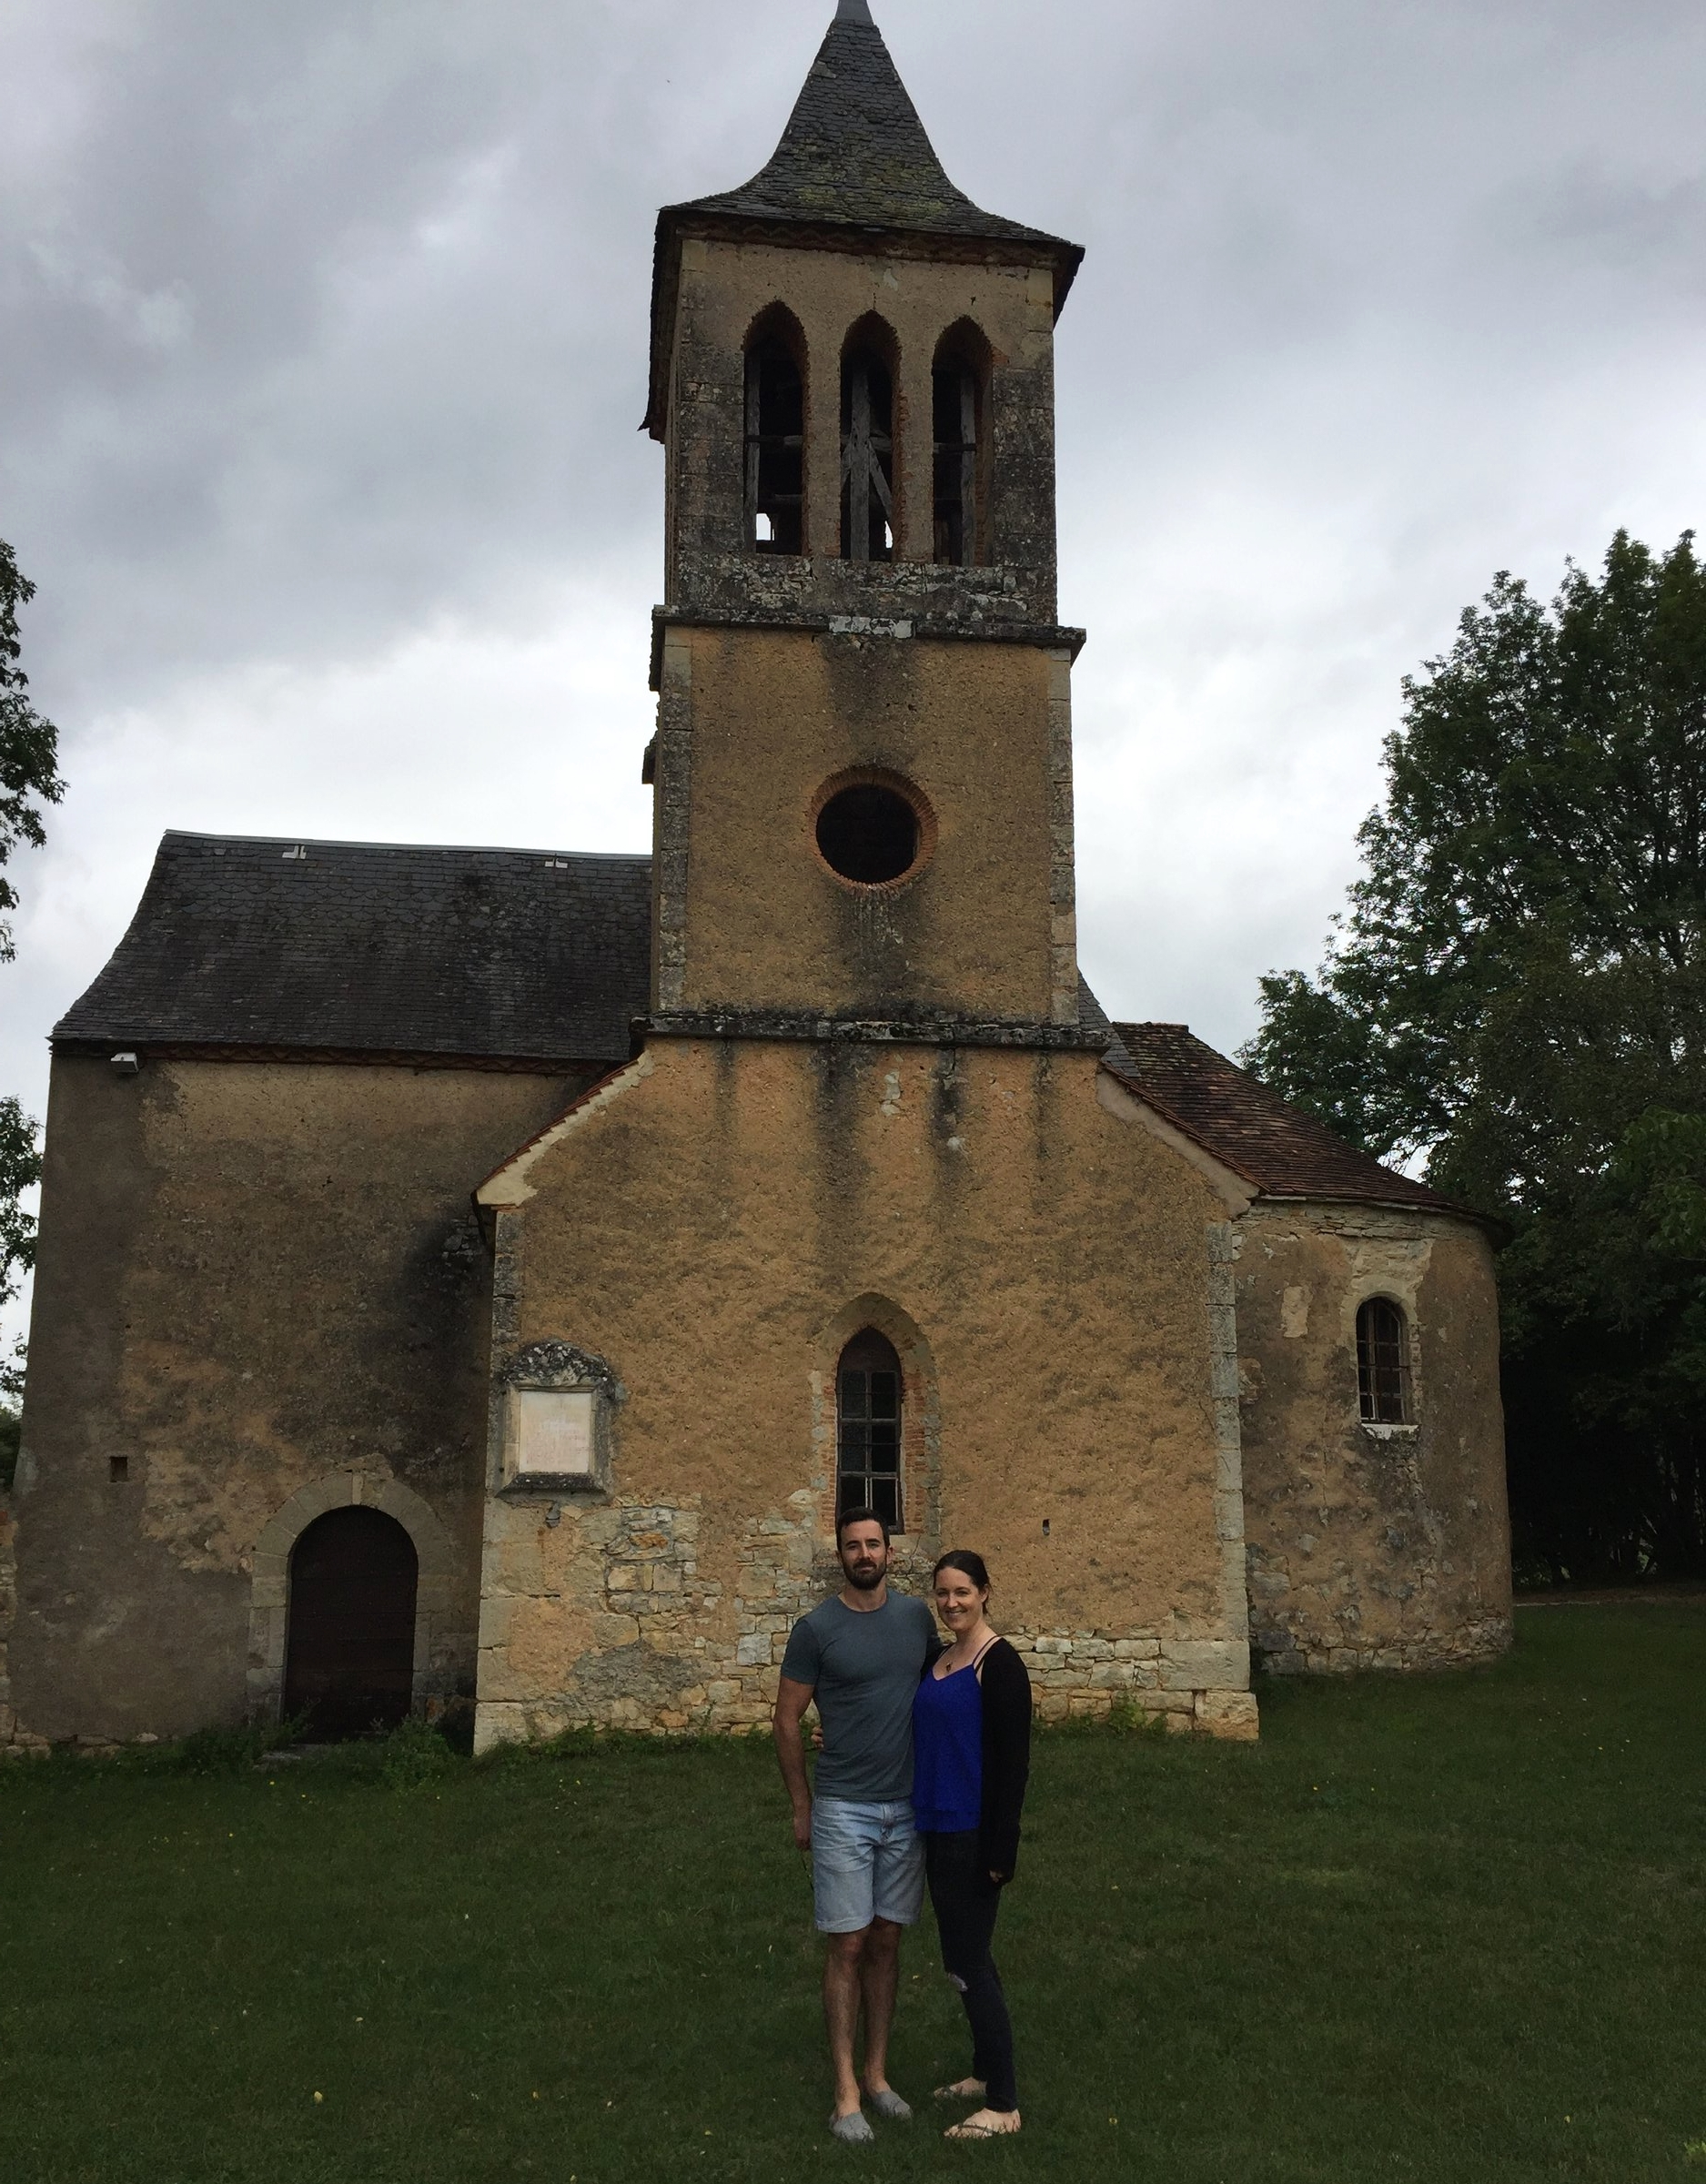 Will and I, on our eighth wedding anniversary outside the cute little church we got married in.